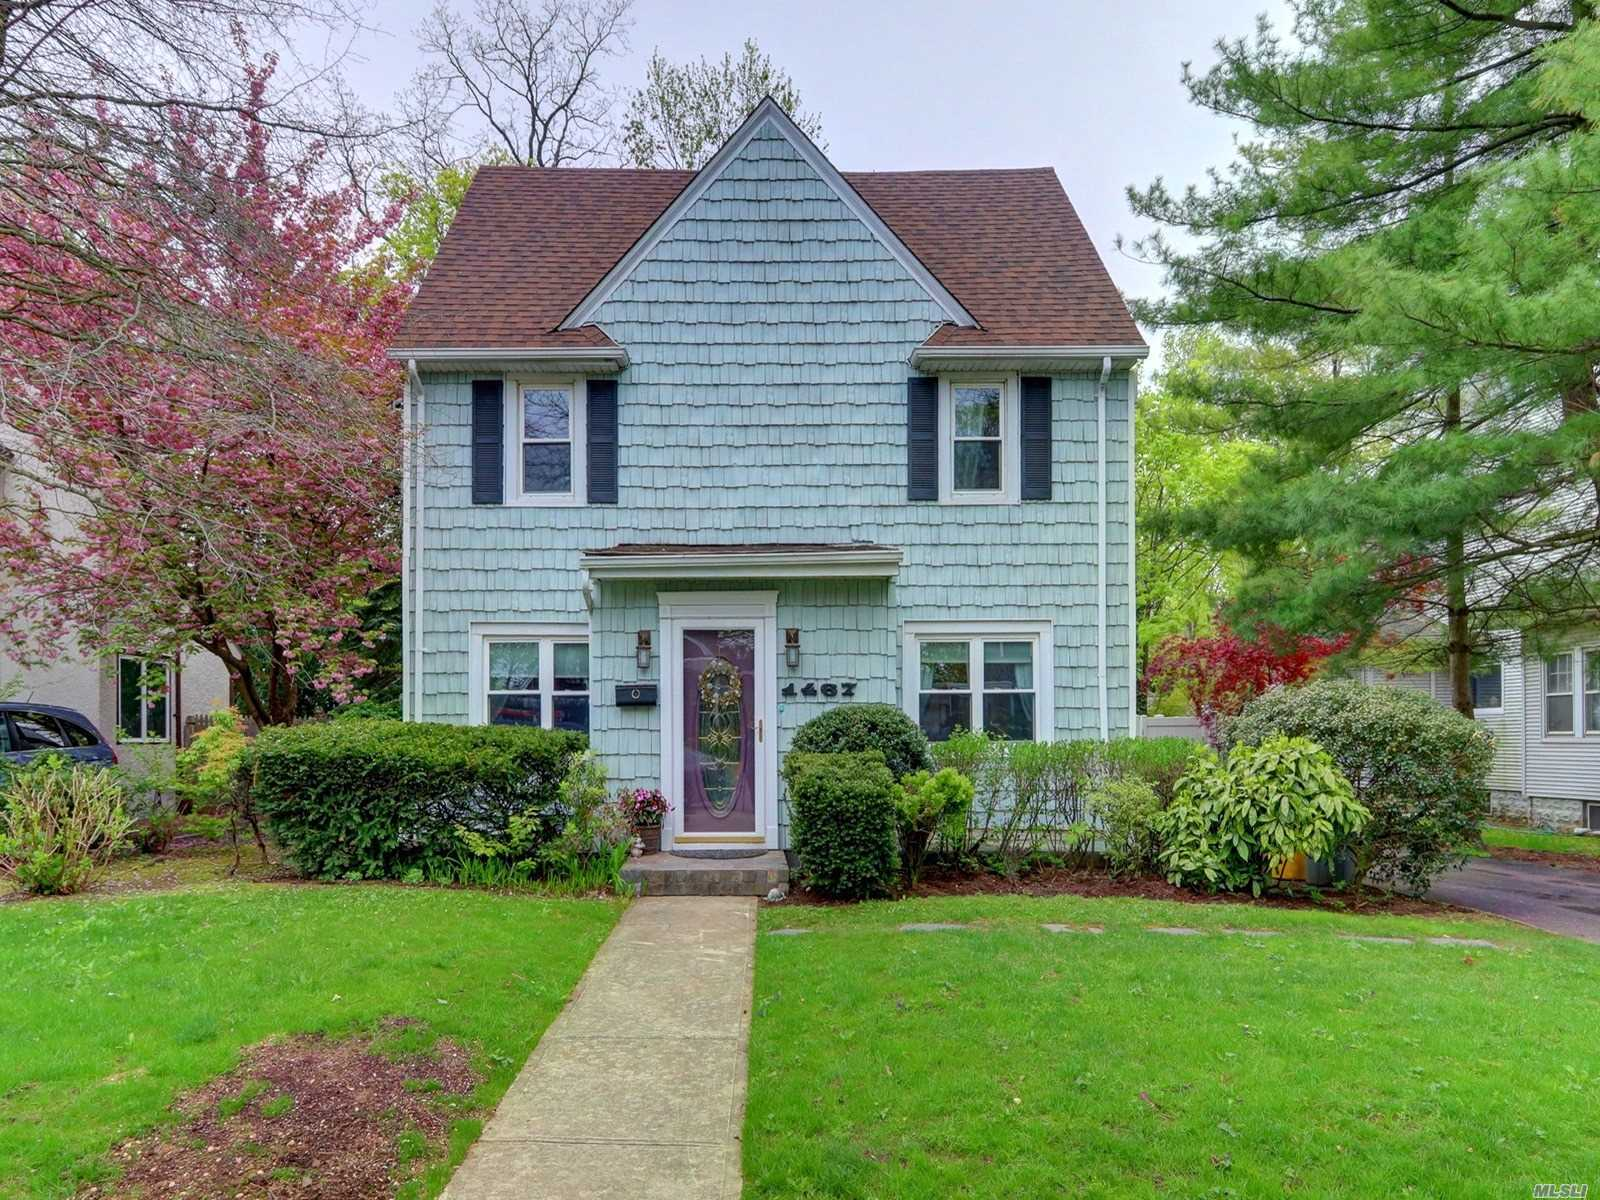 Bright and Beautiful 4 Bedroom Colonial in the desired SD of Hewlett-Woodmere! Walk Into this High Ceiling Spacious LR w/Fp, Formal Dining Area, Open Concept E.I.K, FB w/ Exit to Backyard and BSMT. Second Floor Boasts 3 LG. BDRMS w/FB plus 4th Lg. bedroom on 3rd FL. Finished Basement w/LR/Utly Open Space. Roof (2years New), Boiler Replaced 2018, Water Tank Replaced approx. 5 years ago, Most all Windows Replaced 8 yrs ago, Water Main Line Replaced Recently, Close to LIRR, Taxes Being Grieved!